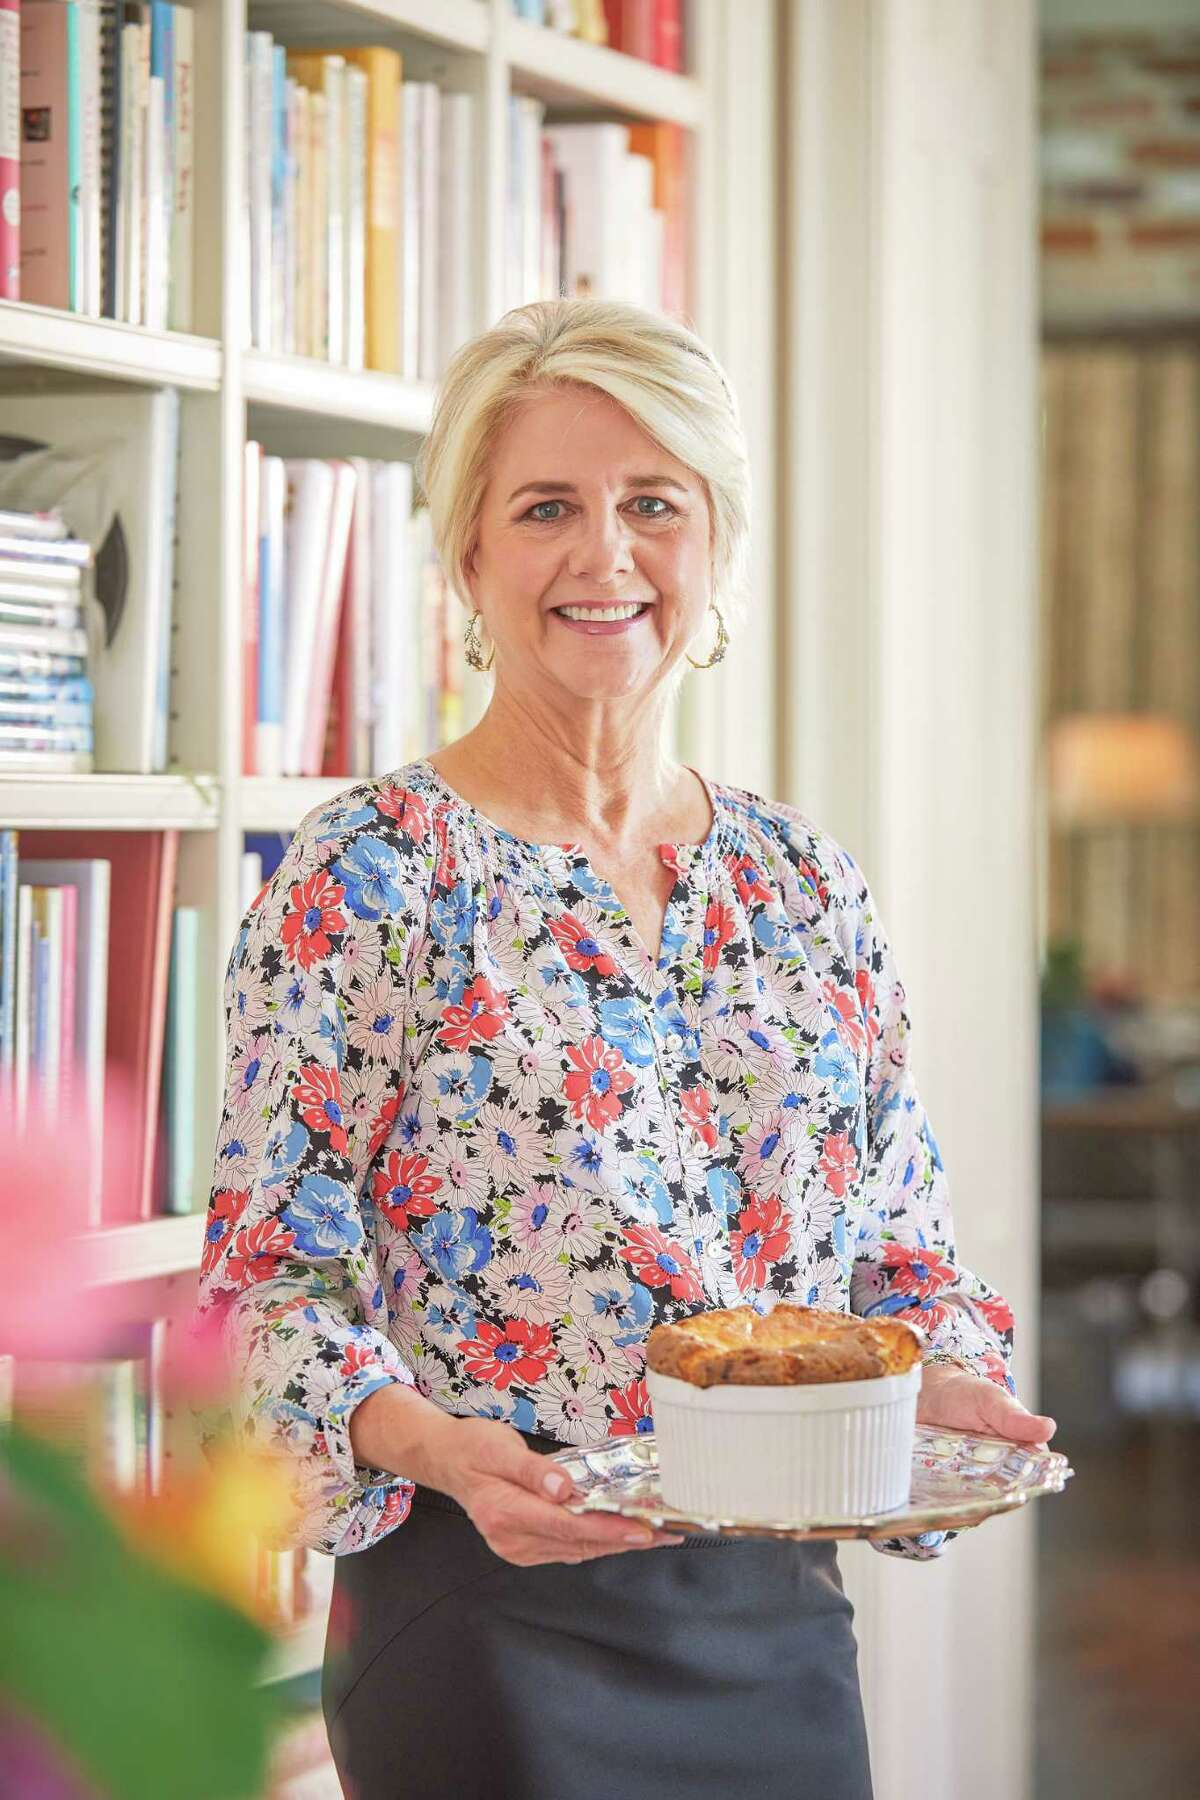 The Fab Fete is a new concept from Houston catering company Swift + Company offering freezer-to-oven gourmet souffles, available for nationwide shipping. Shown: Elizabeth Swift Copeland, founder of Swift + Company and sister company The Fab Fete.